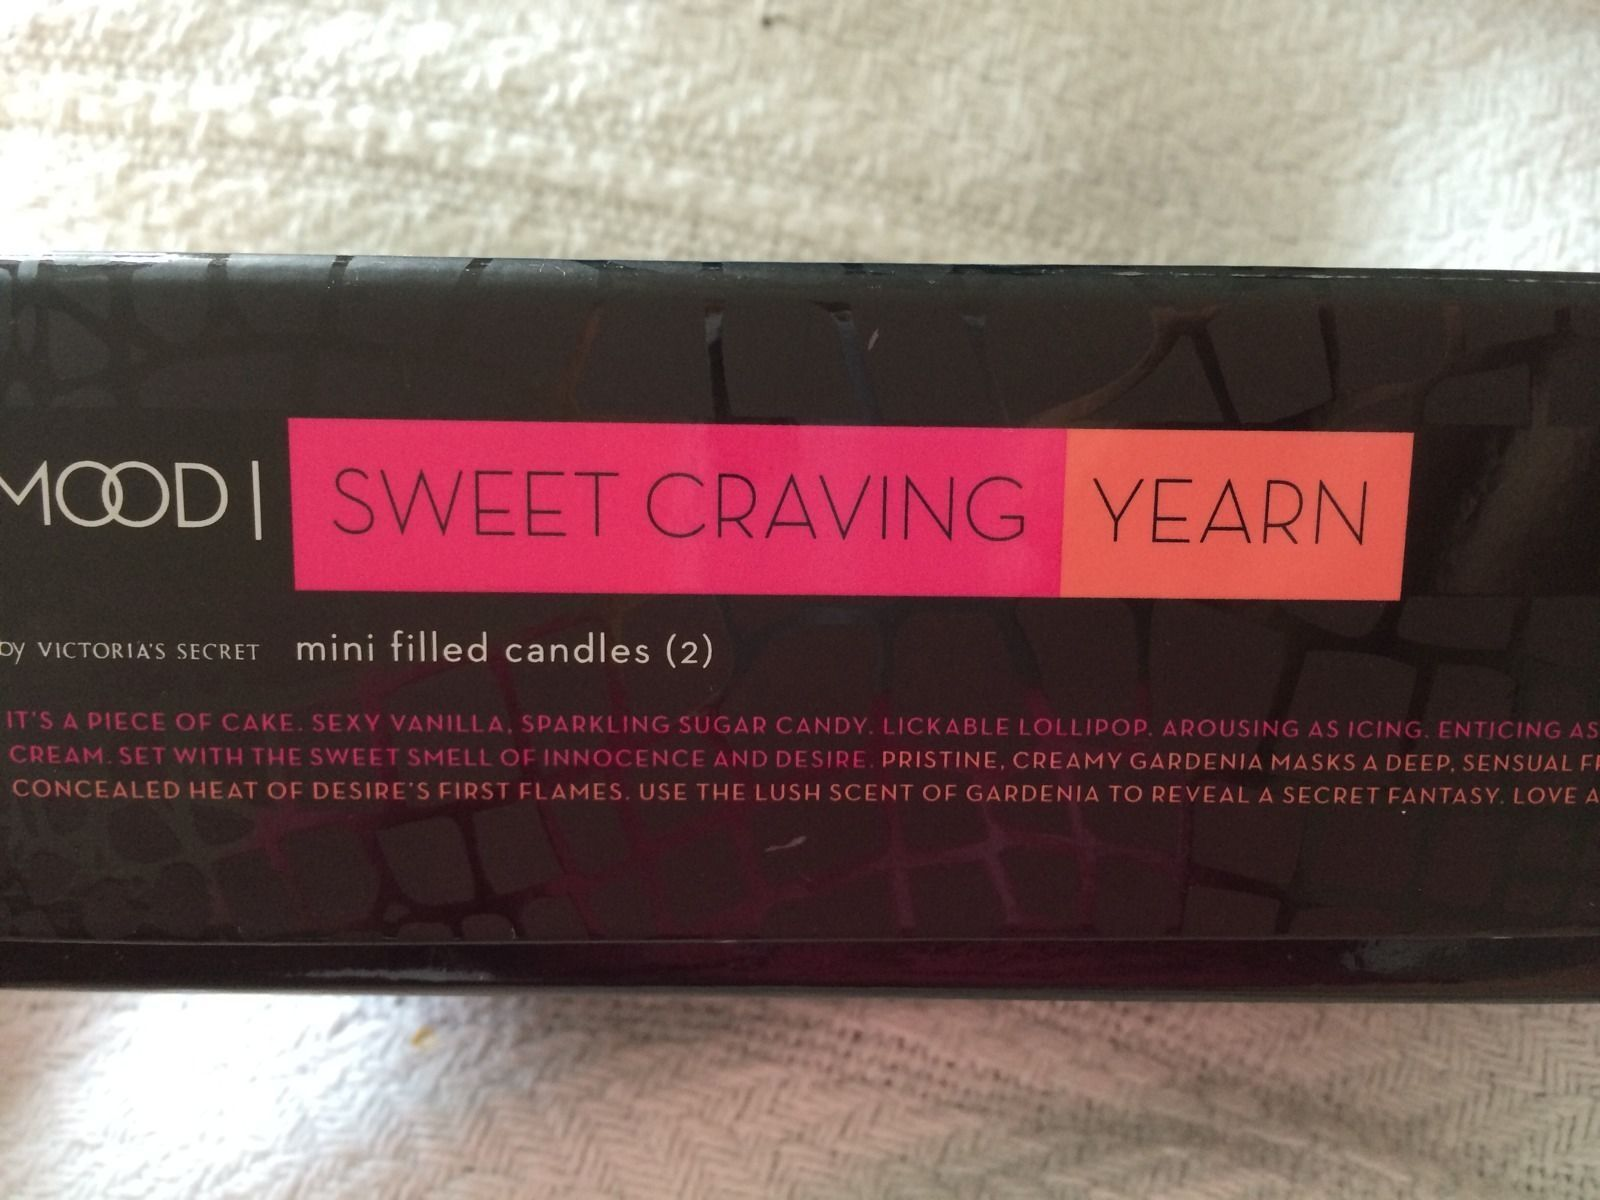 Victoria's Secret Mood Sweet Craving 2